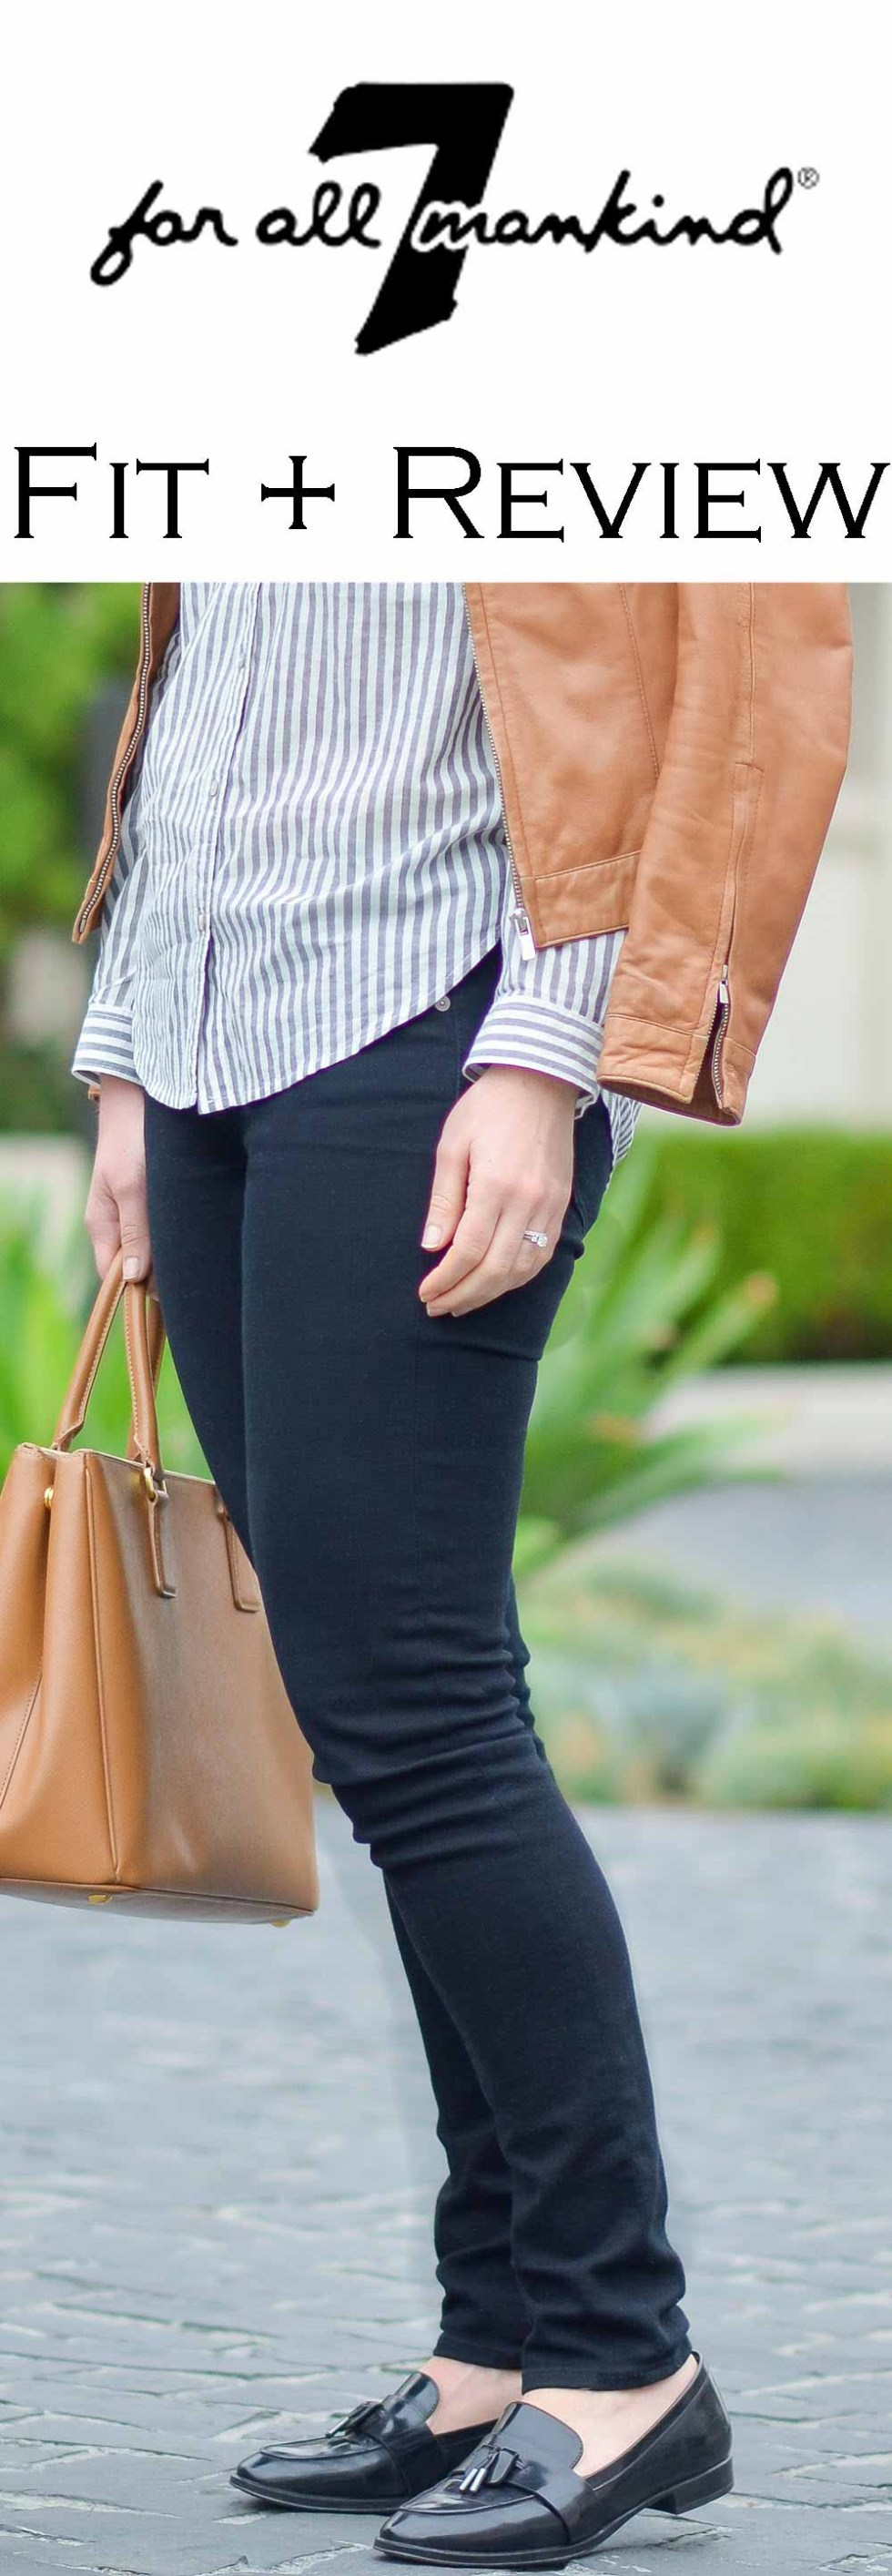 7 for all Mankind Fit Guide + Review #denim #fashionblog #fashionblogger #jeans #outfitideas #fallfashion #fallstyle